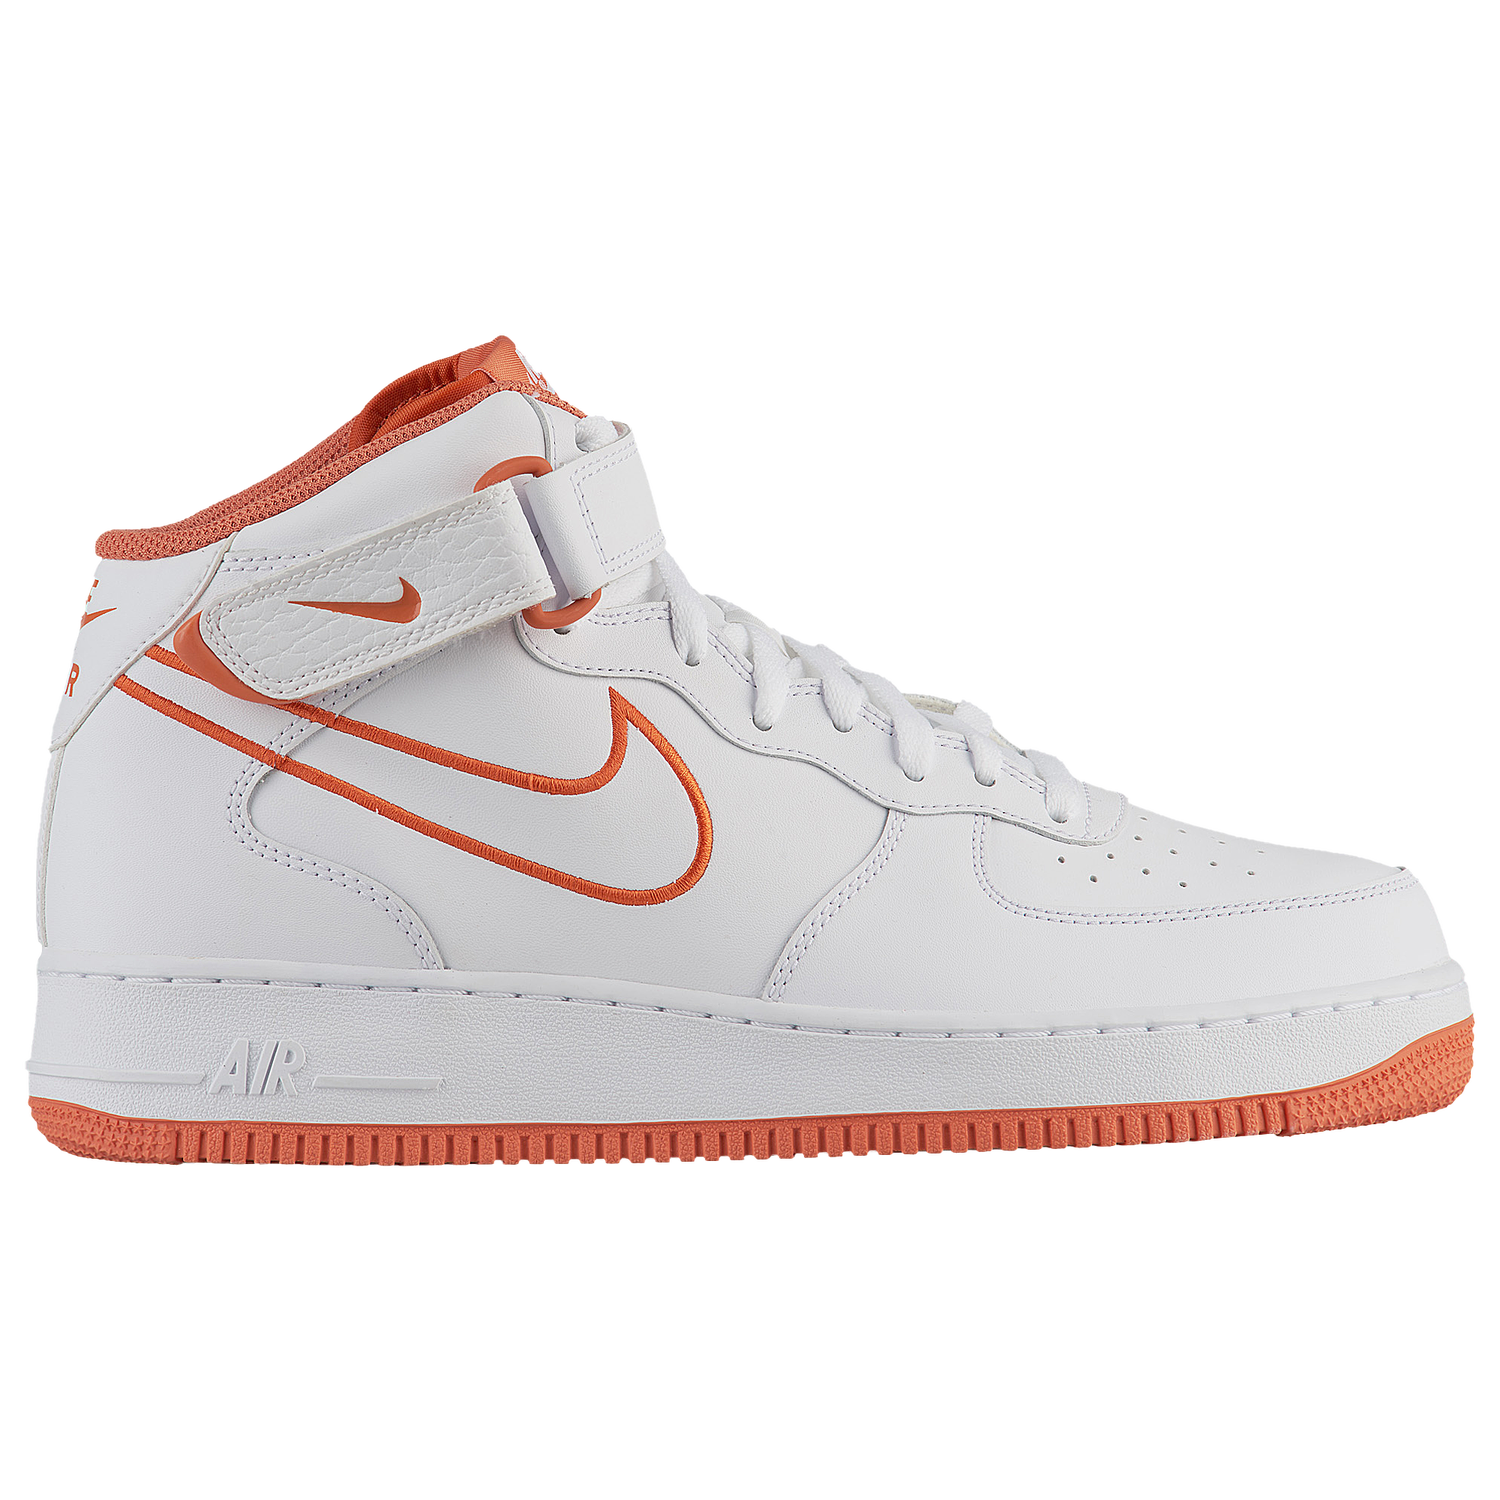 Nike Air Force 1 Mid Hombres  Casual Zapatos Blanco  Hombres Terra Naranja 2f691f